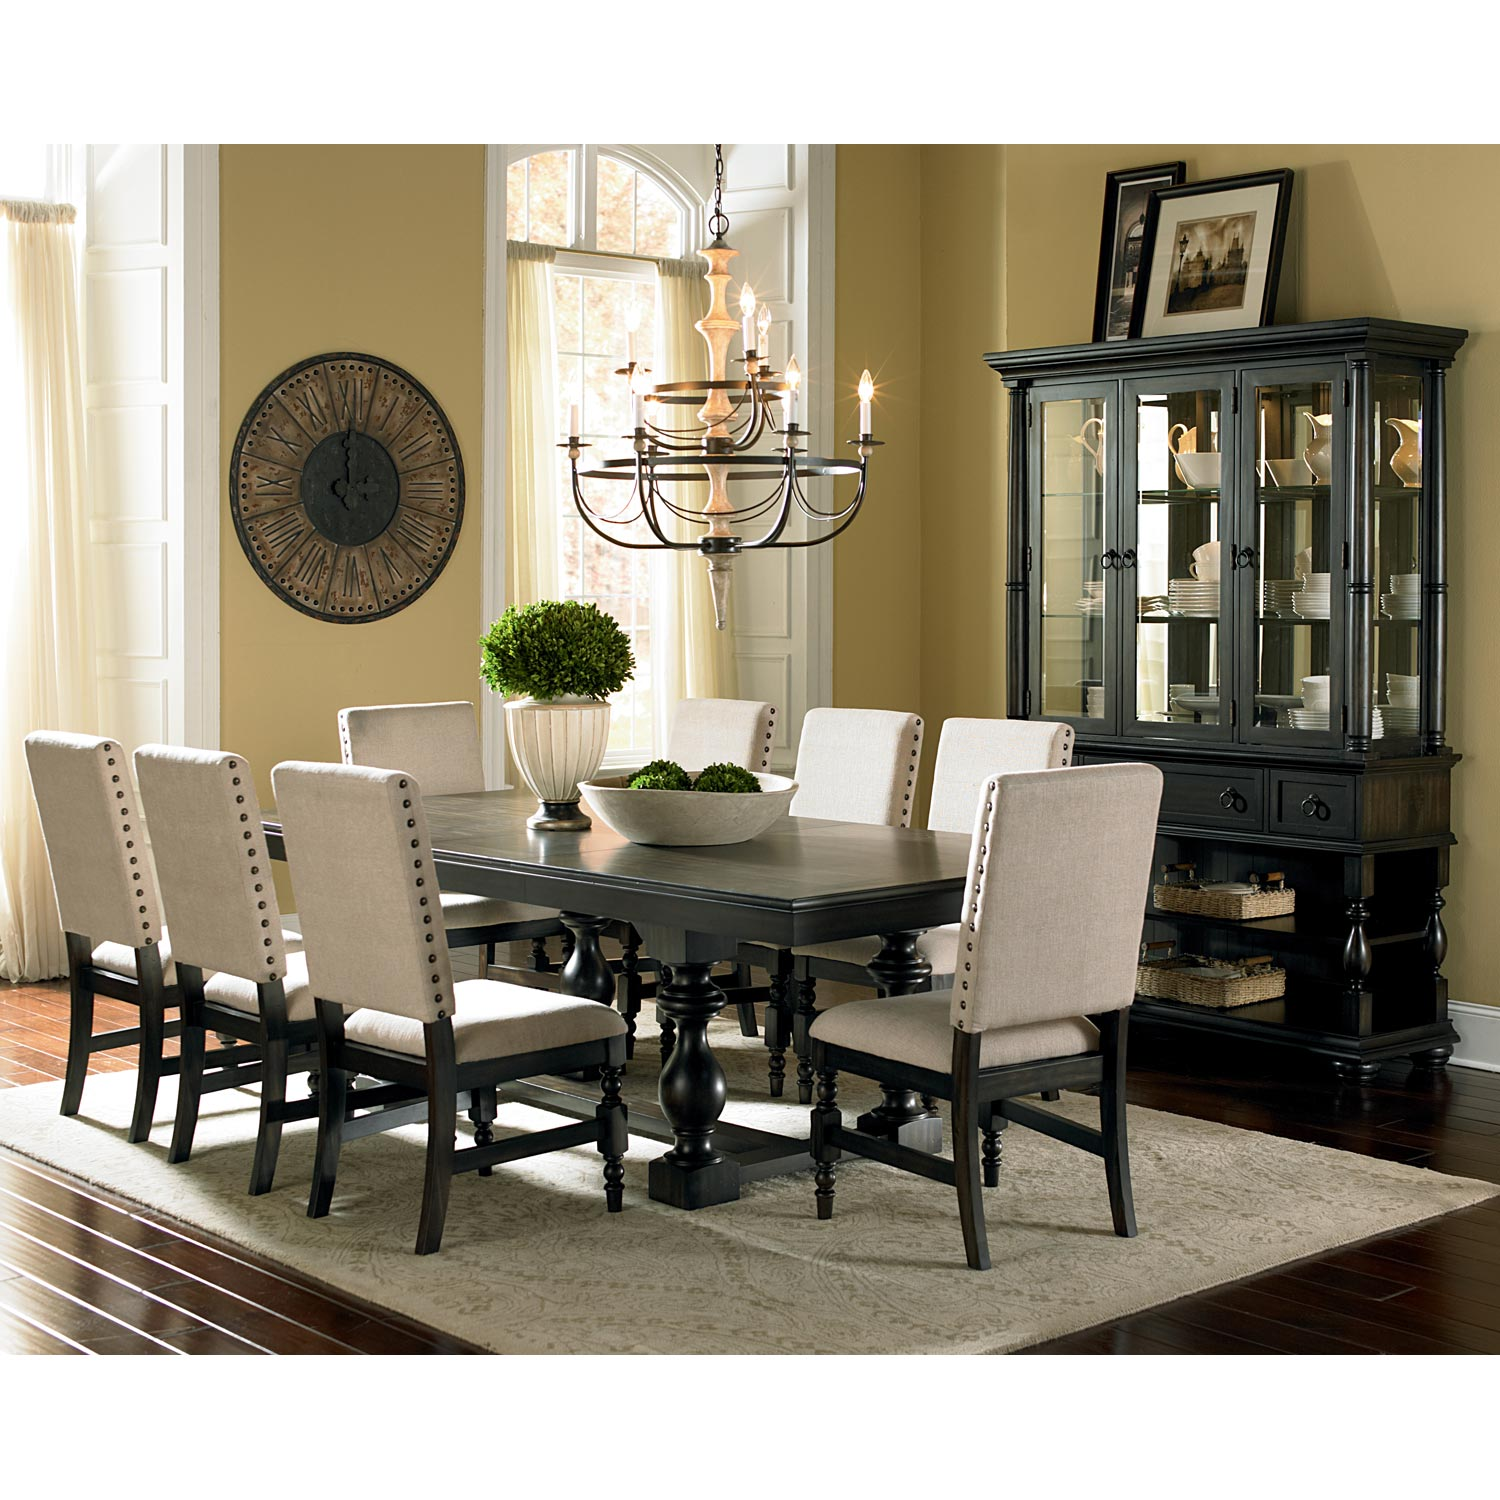 Dining Room Sets With Leaf: Extension Table, Fabric Chairs